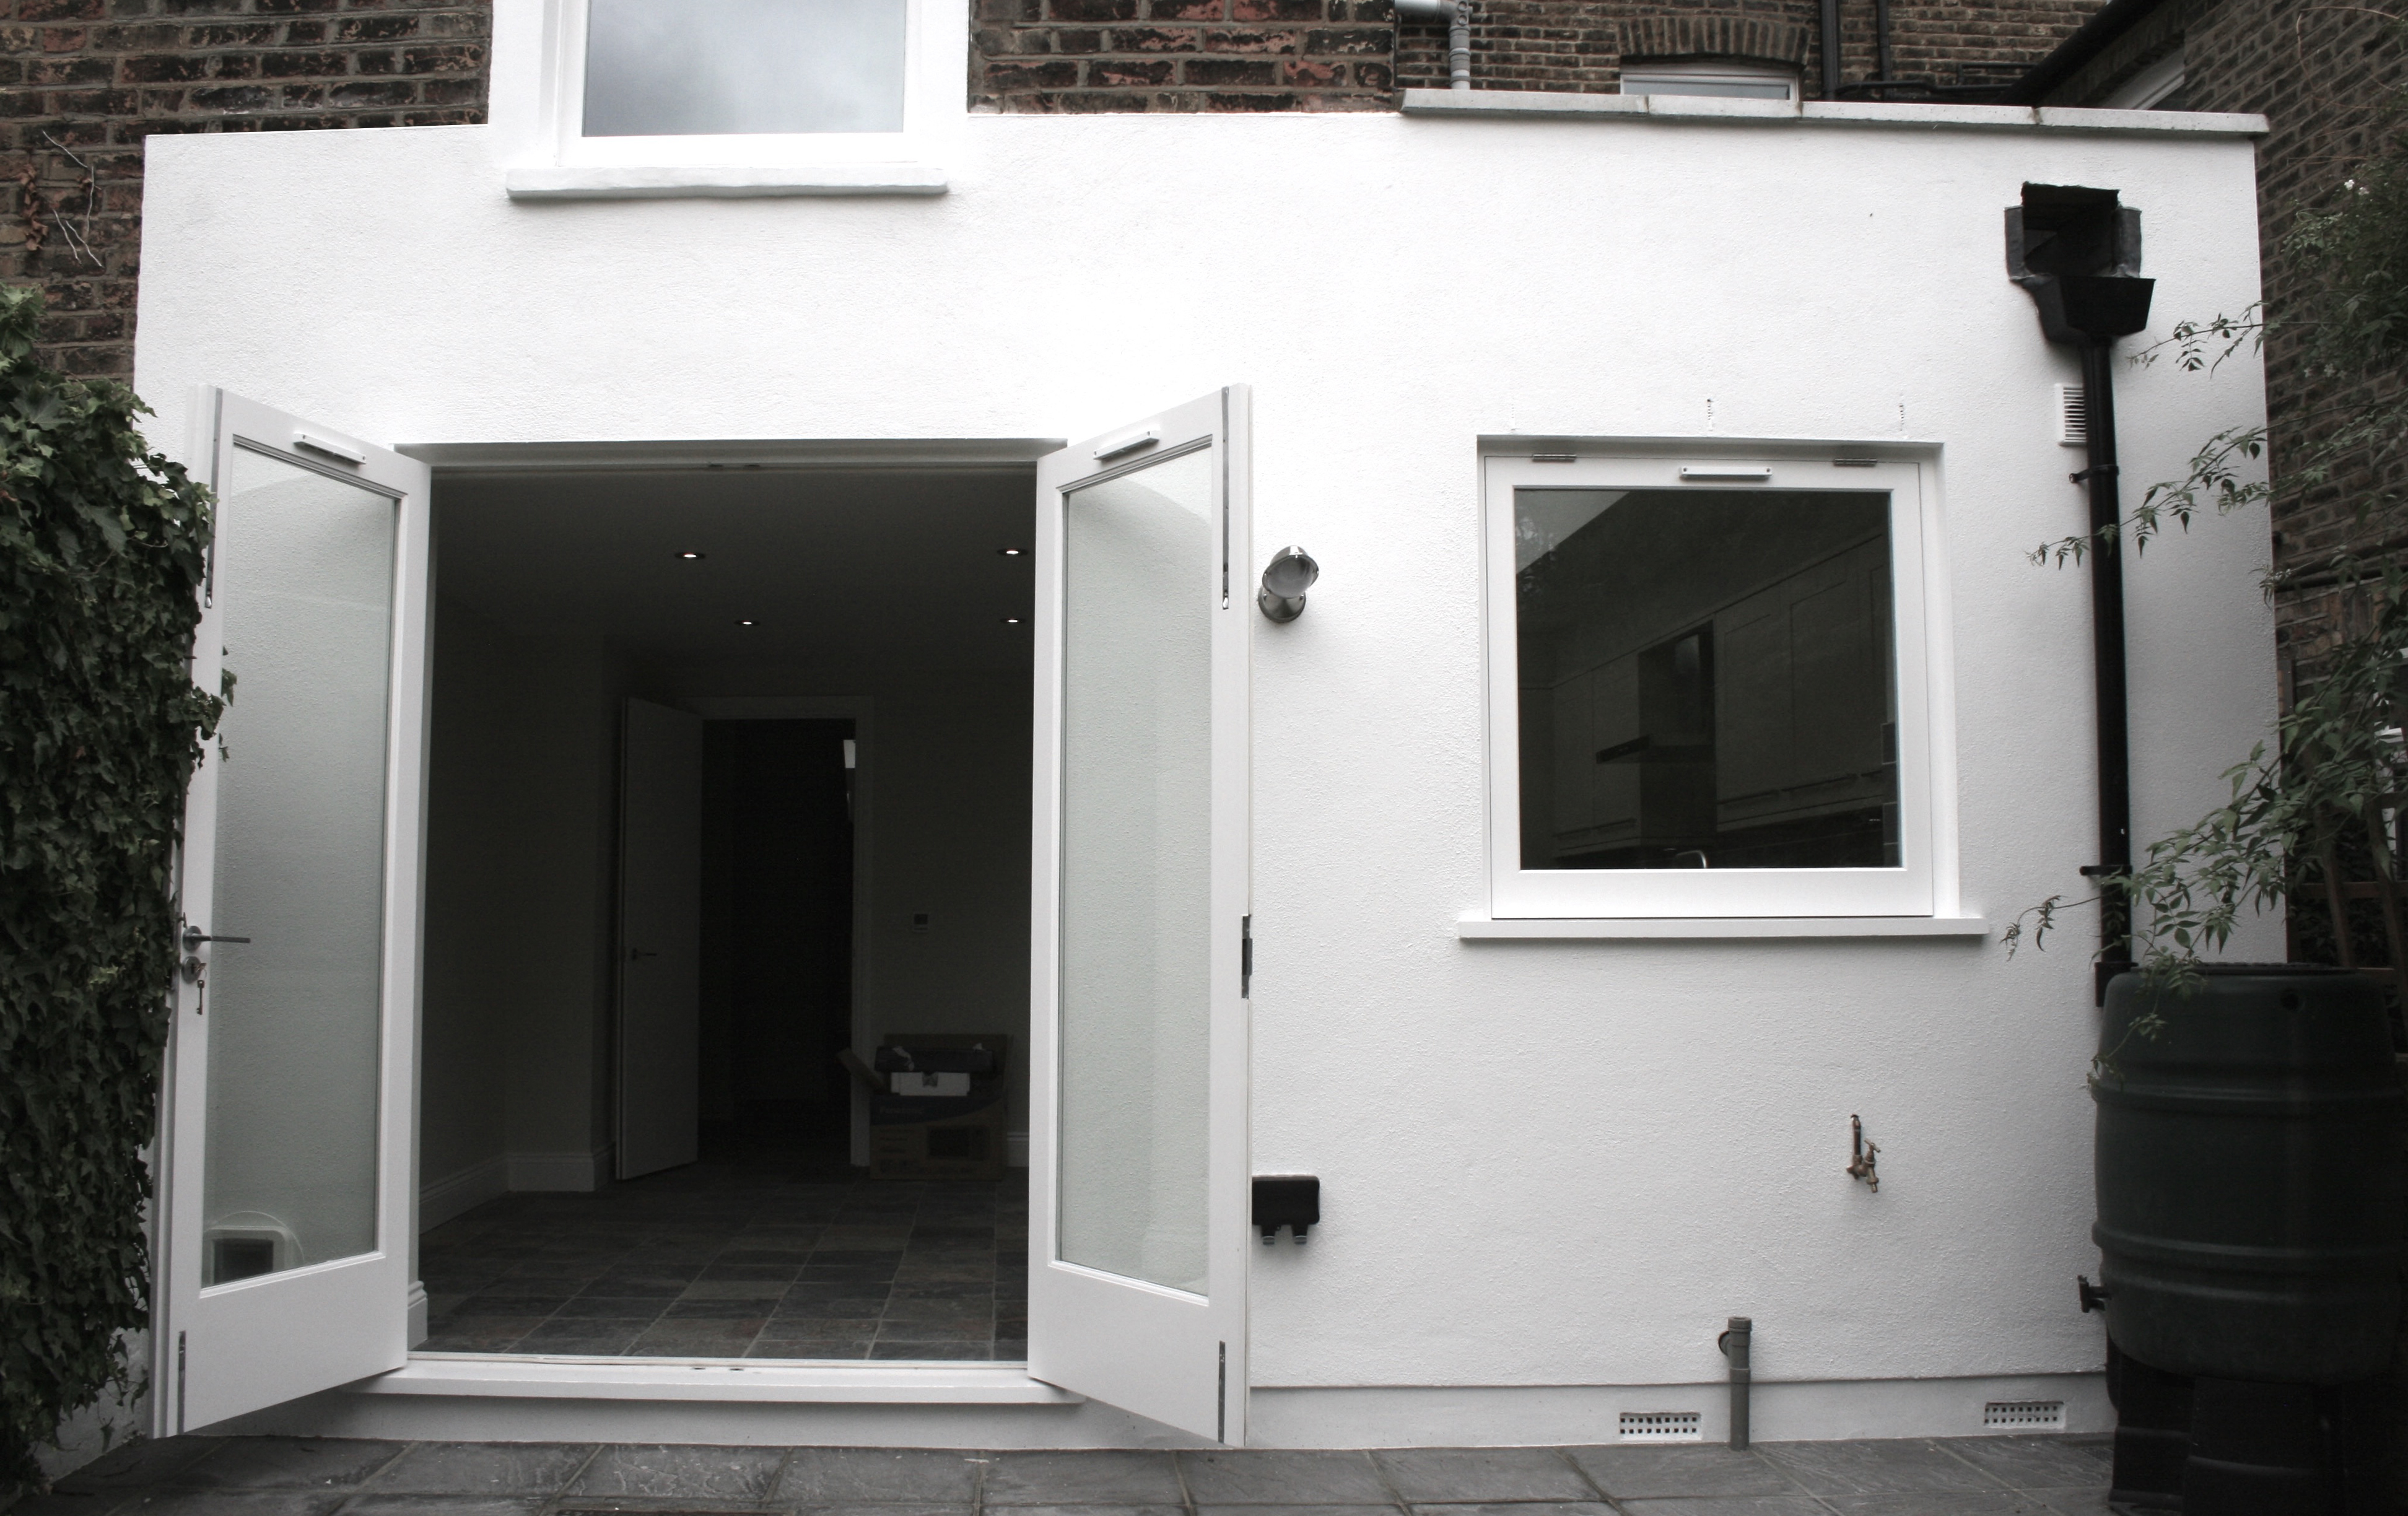 London, N4 | New side extension